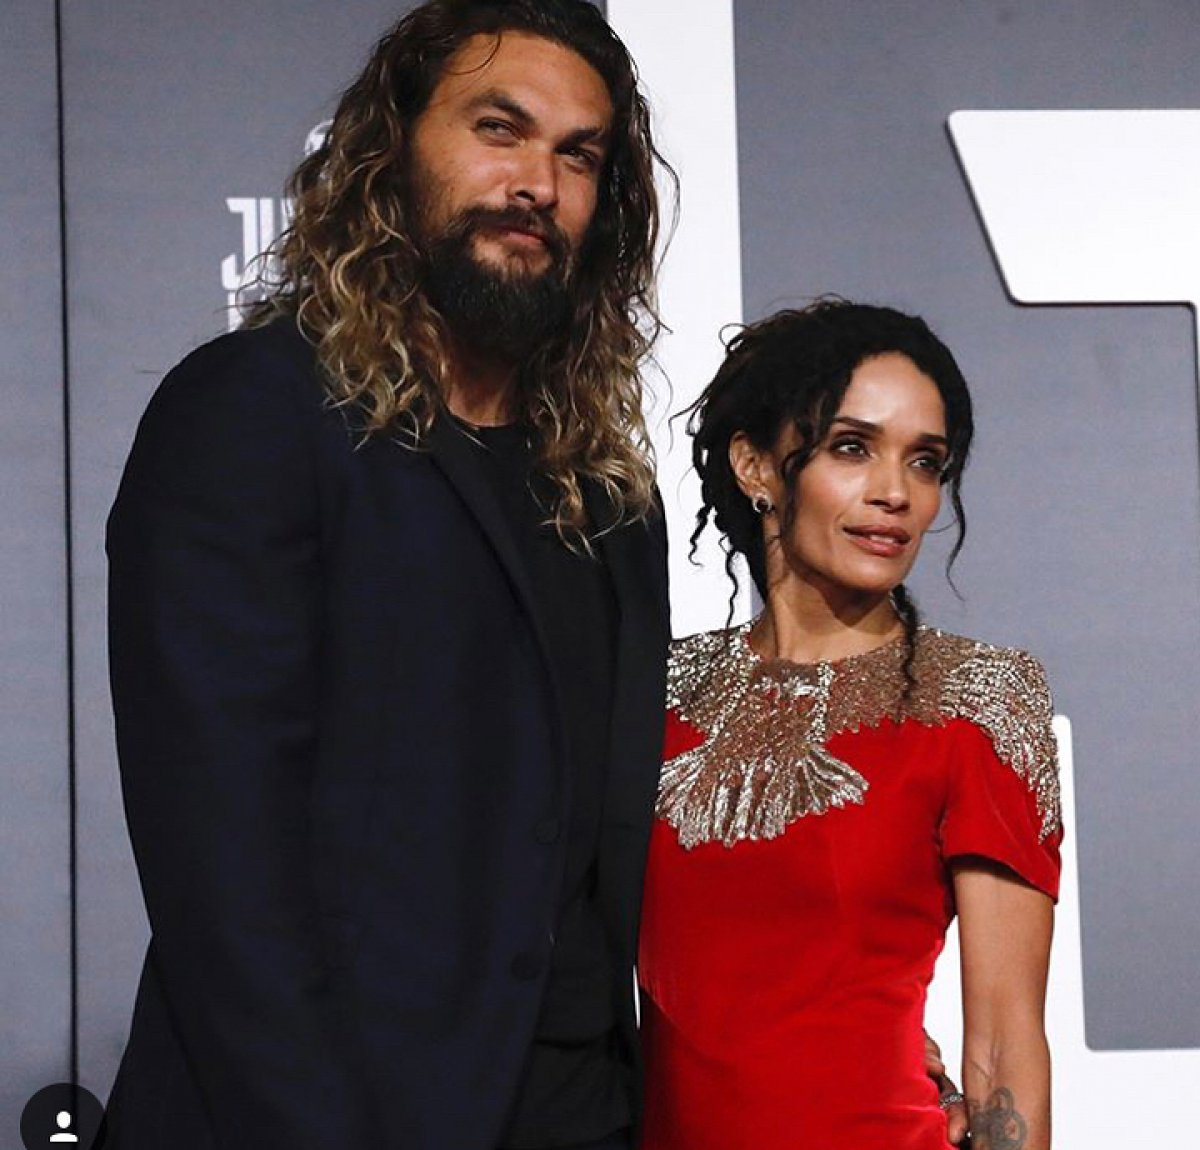 Jason Momoa Pink: Jason Momoa And Lisa Bonet Attend 'Justice League' Movie